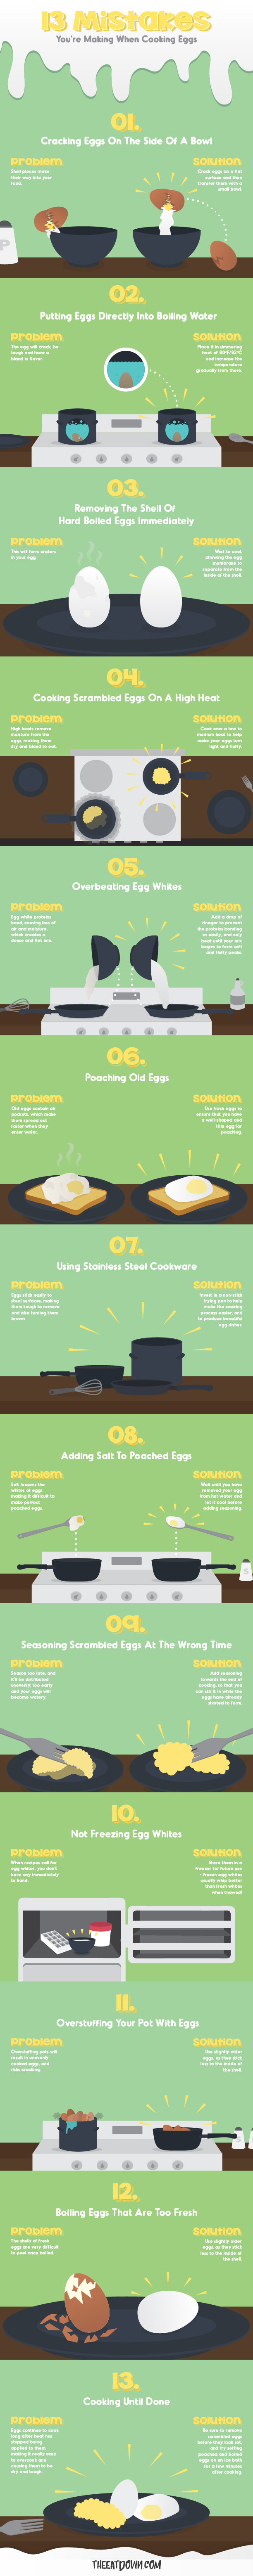 How to Become the Perfect Egg-Chef: 13 Typical Rookie Mistakes to Avoid - Infographic